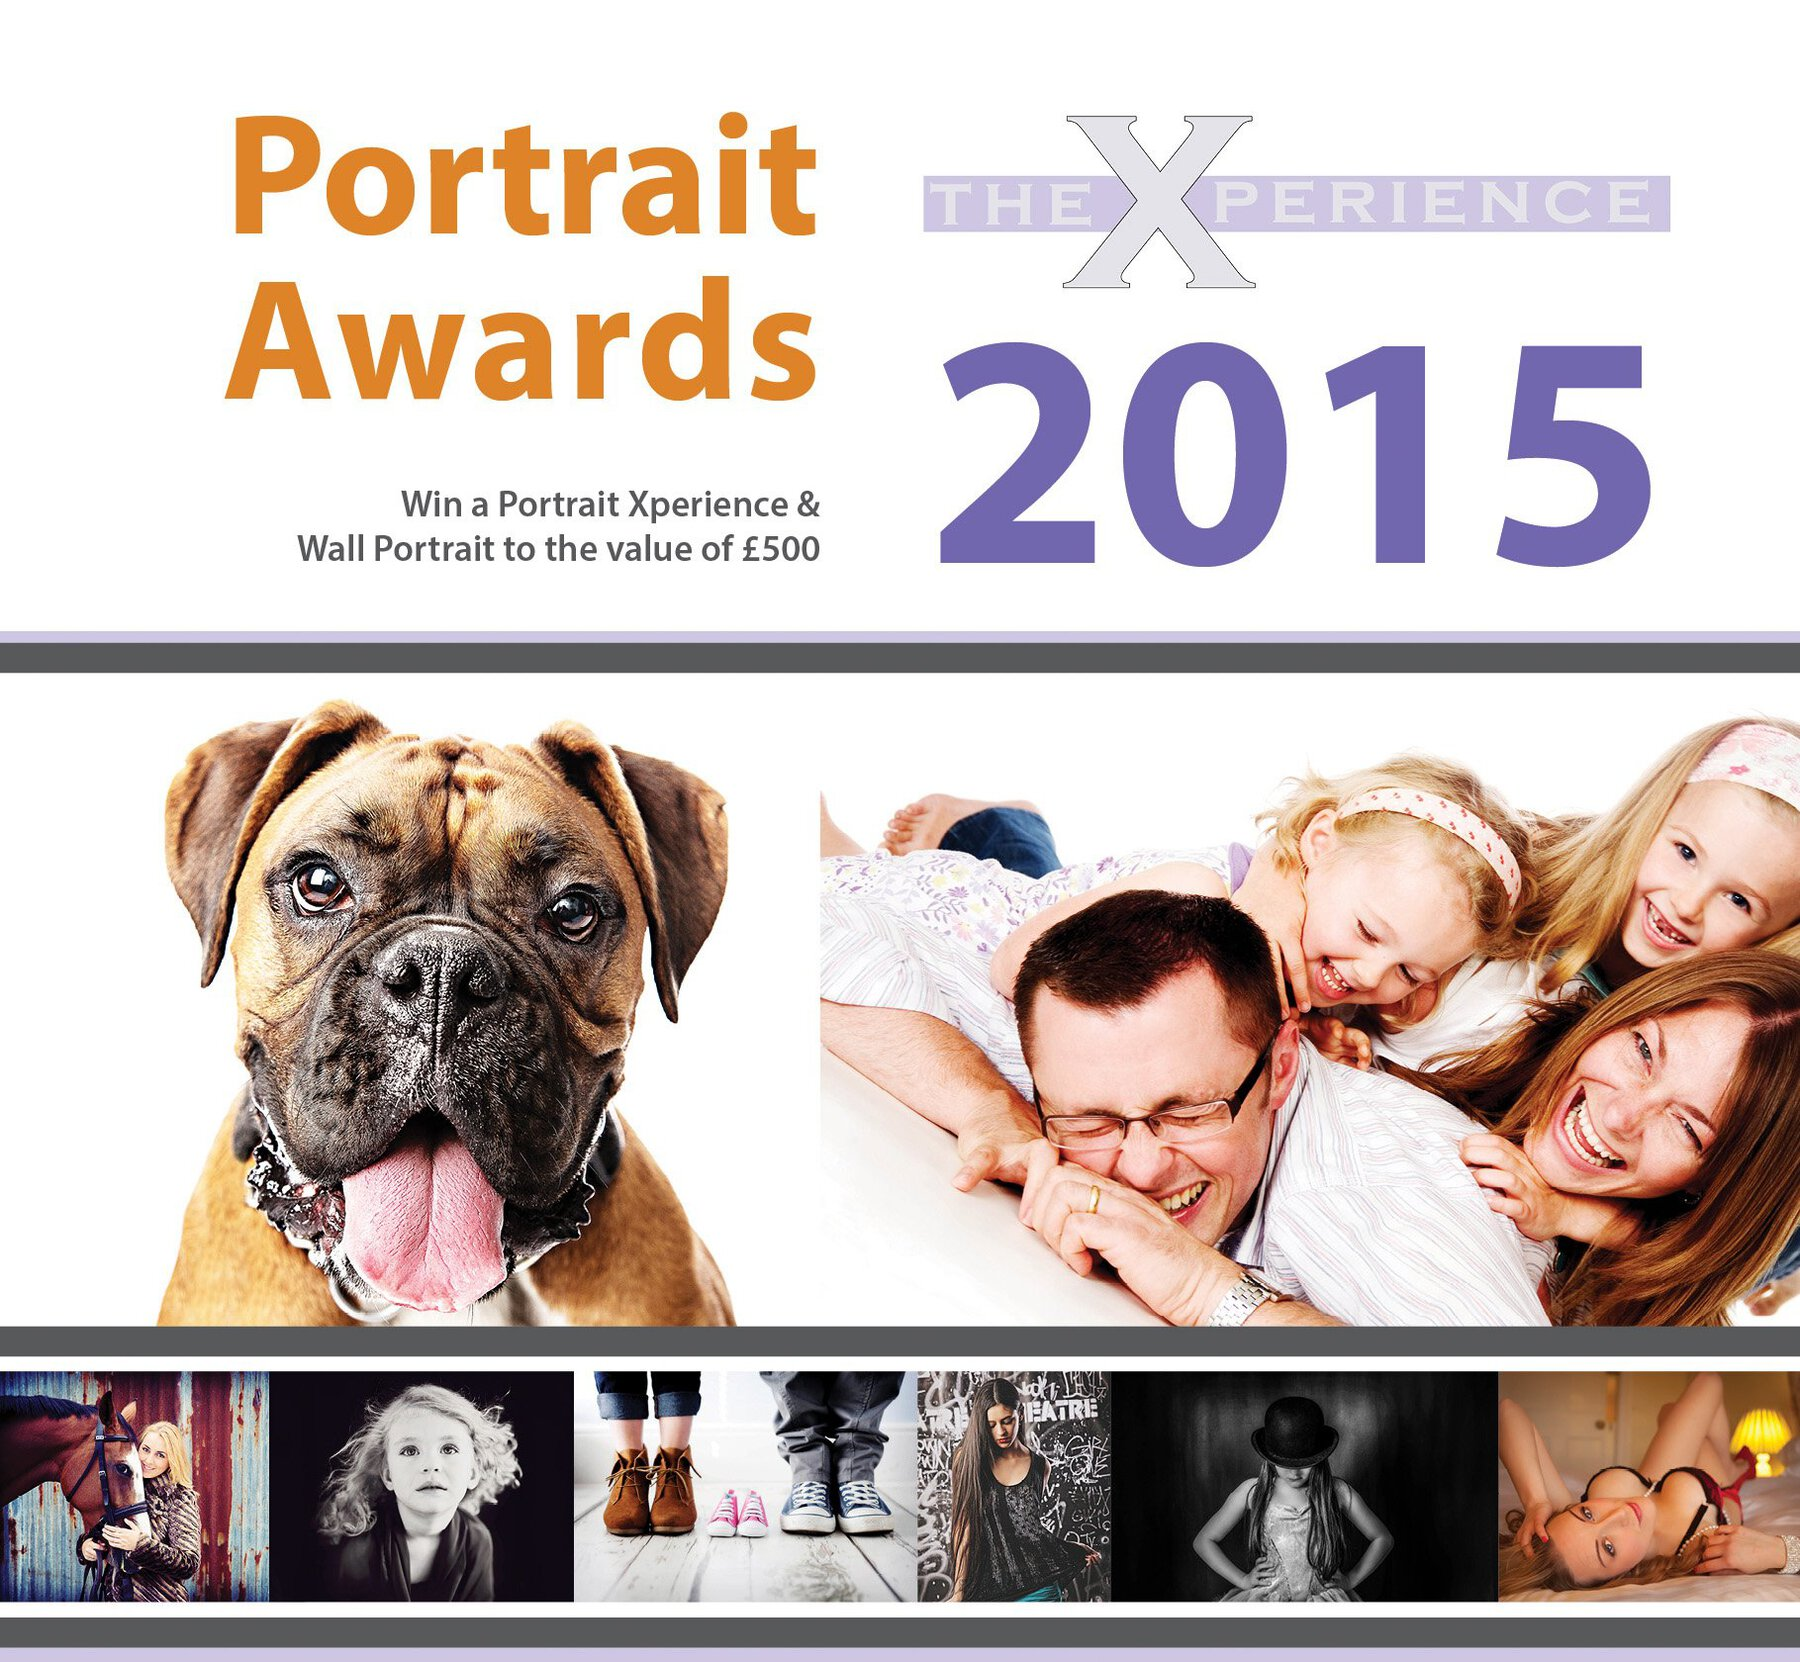 The Xperience Portrait Awards 2015 as a unique chance to win £500 of your favourite family portrait by Cacchioli Photography